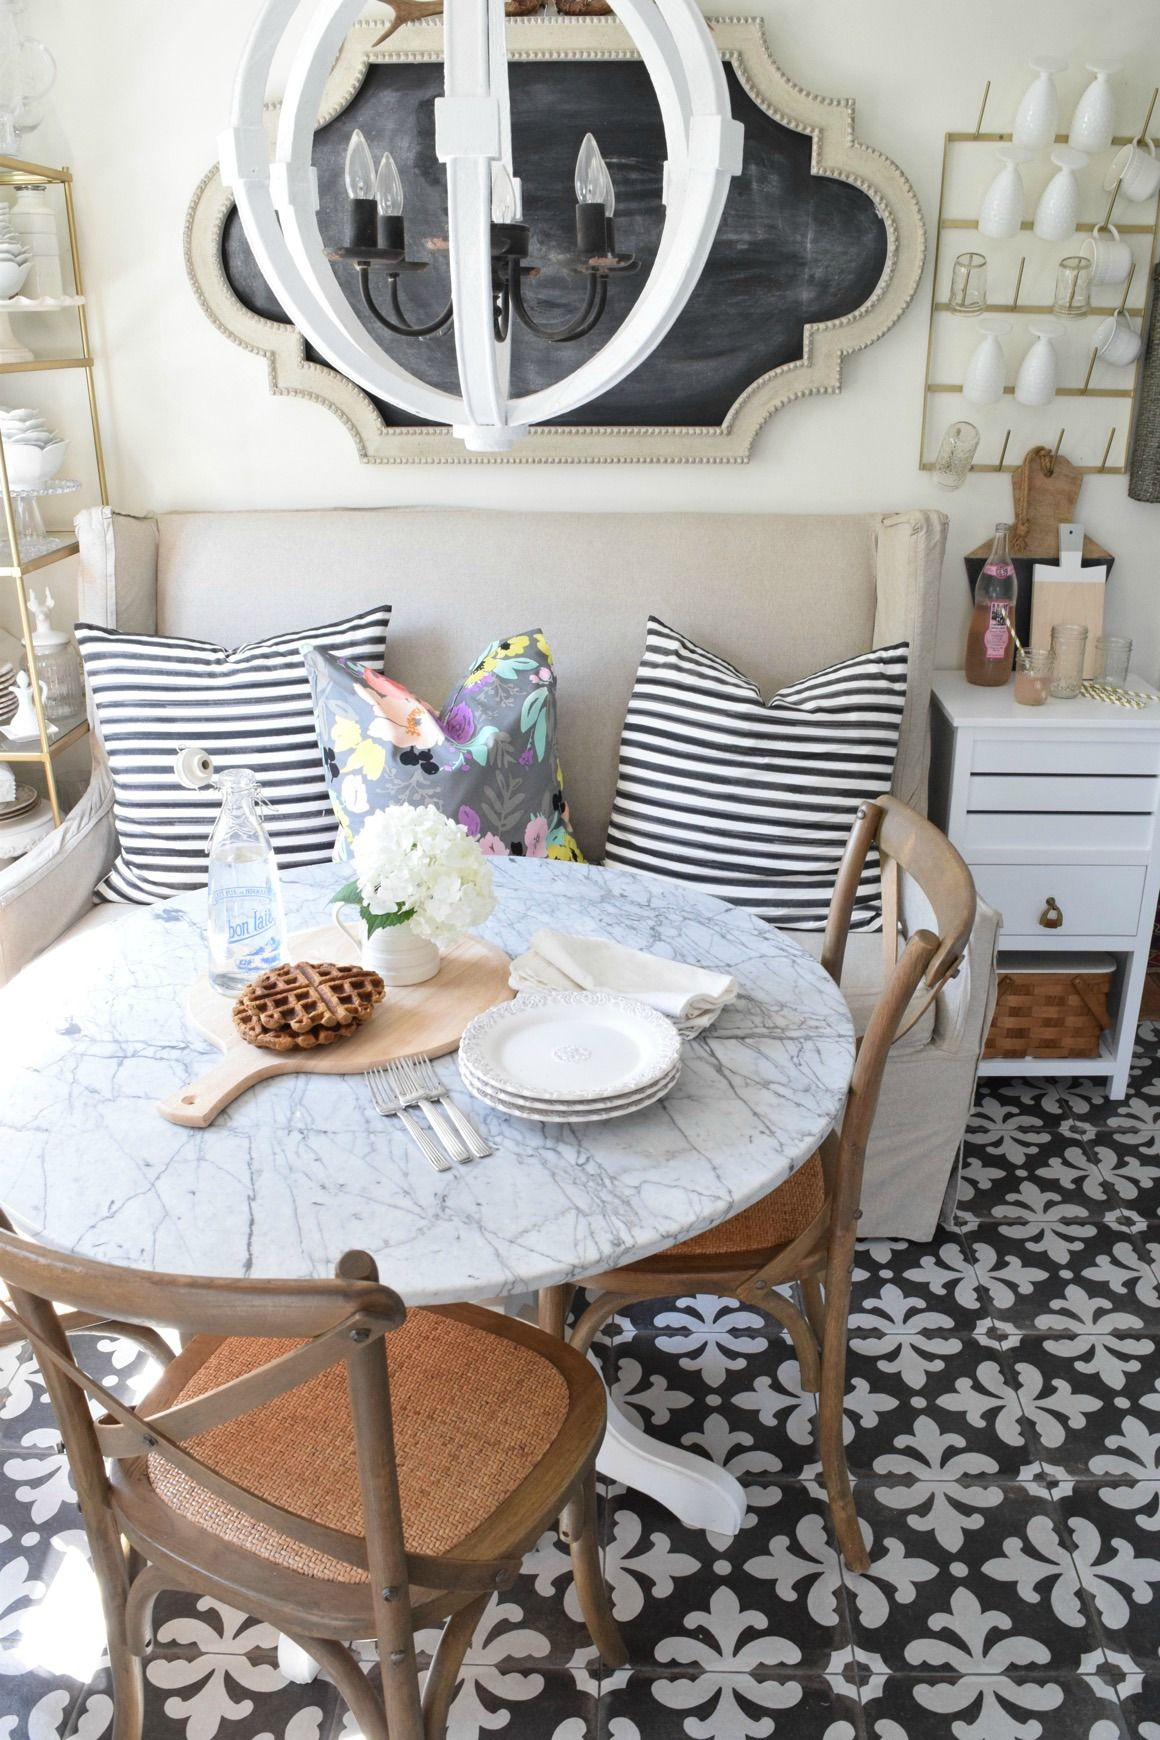 Banquette Style Seating In A Small Space With Images Small